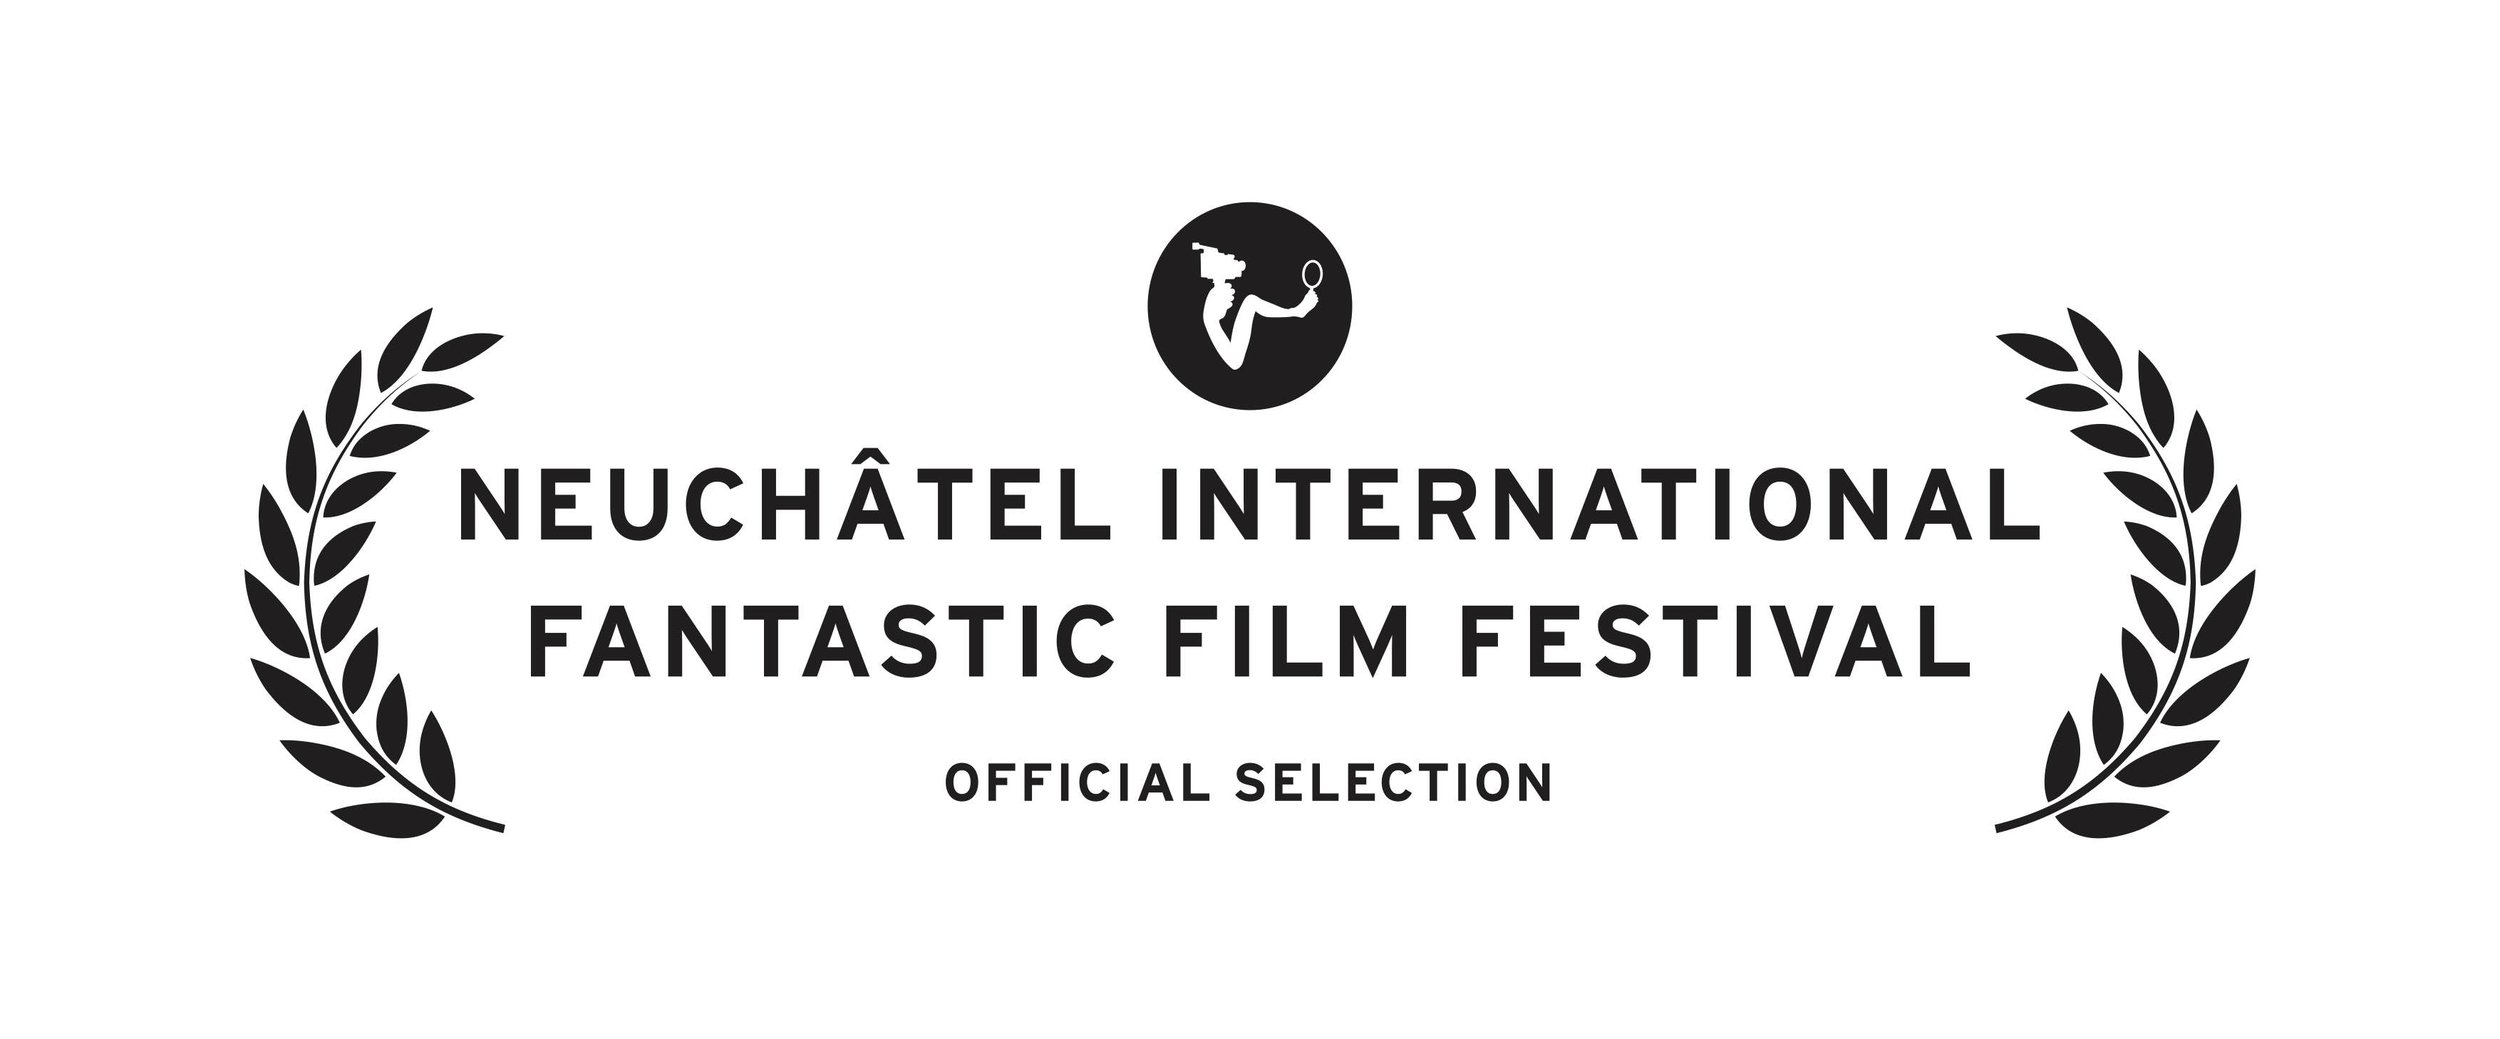 NIFFF_logo_officialselection copy.jpg